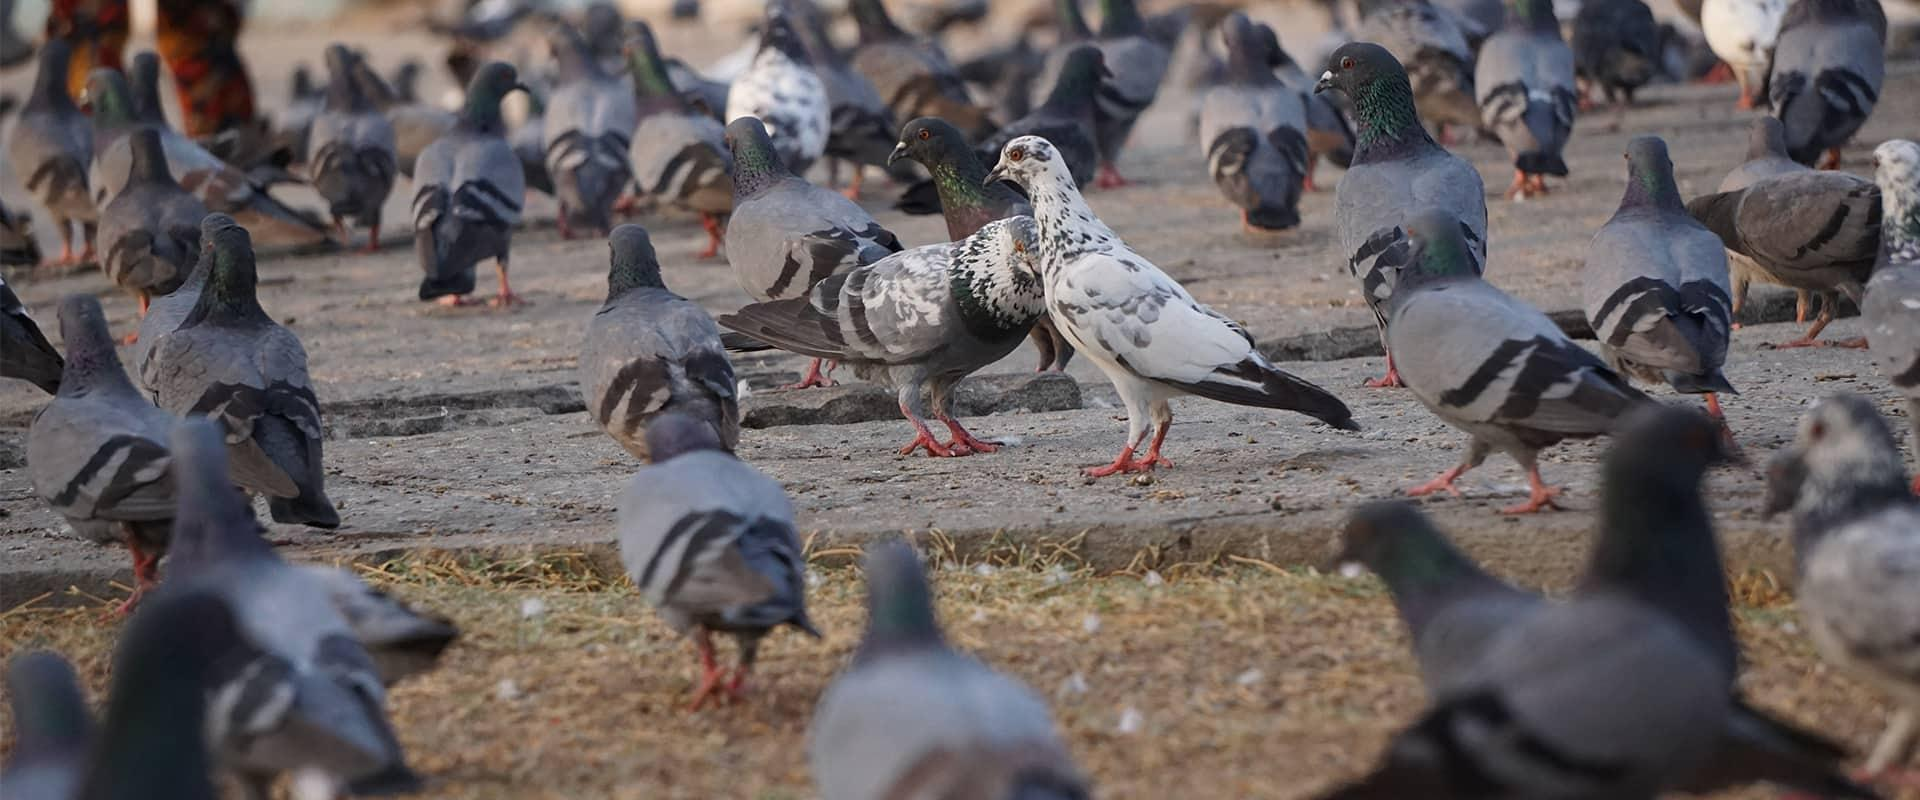 a flock of pigeons on the ground outside a business in mckinney texas